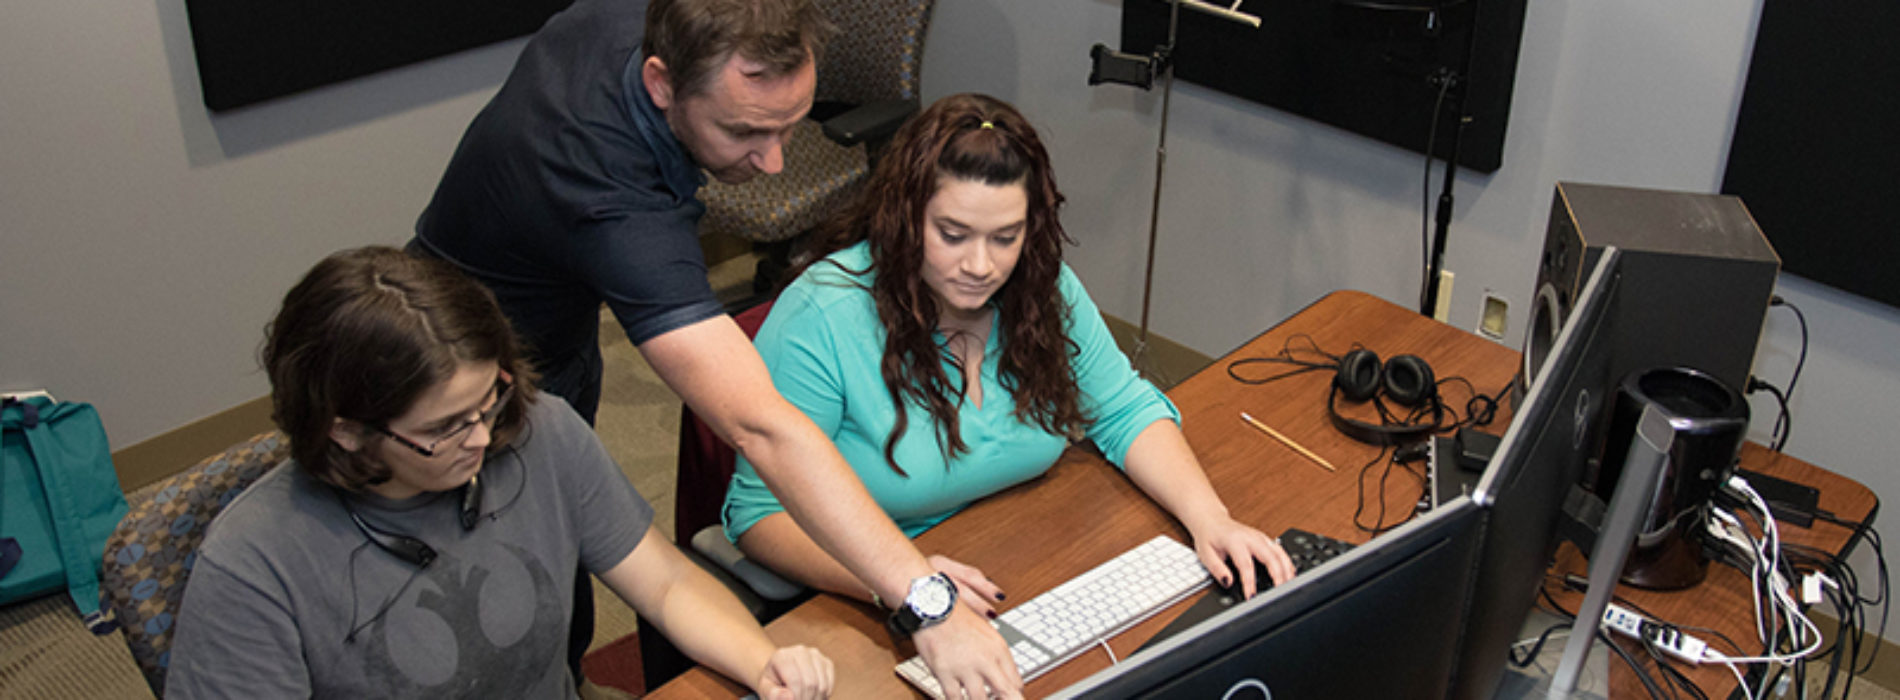 With Move, Communication Department Adds Ideas, Technology to Center of Campus